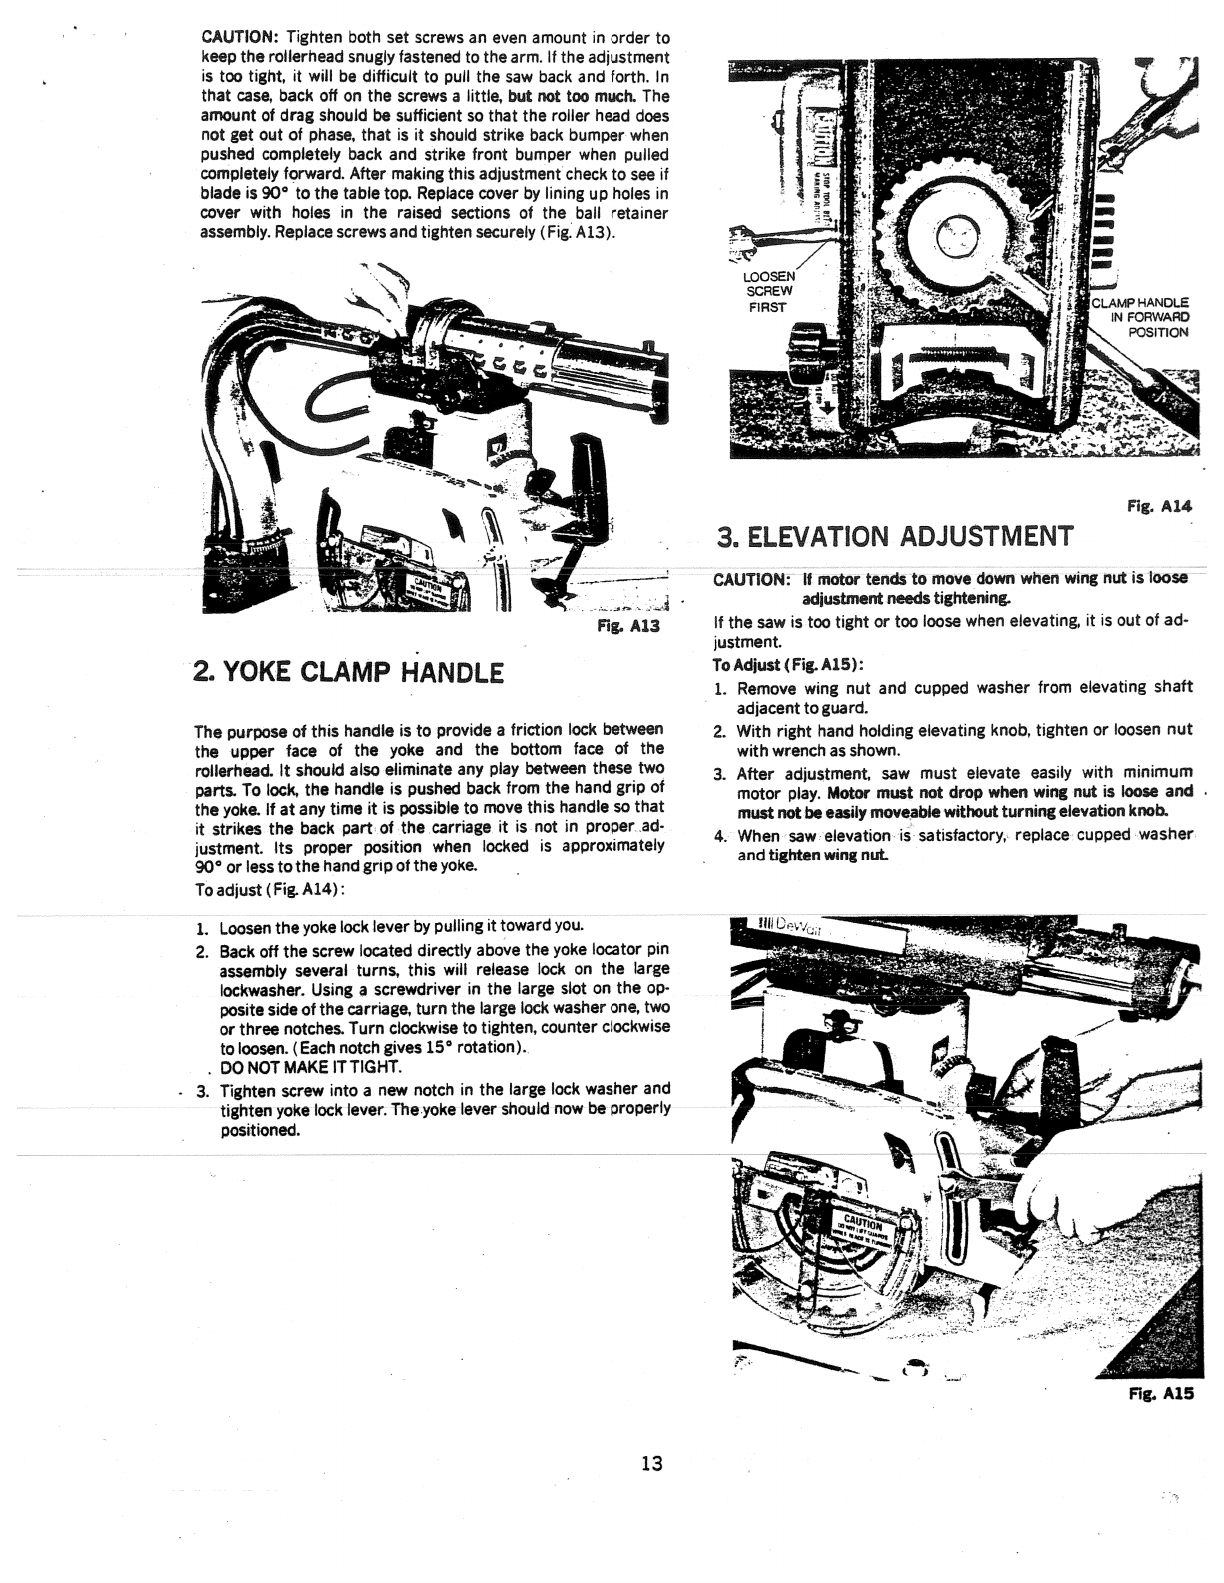 page 13 of dewalt saw 3400 user guide